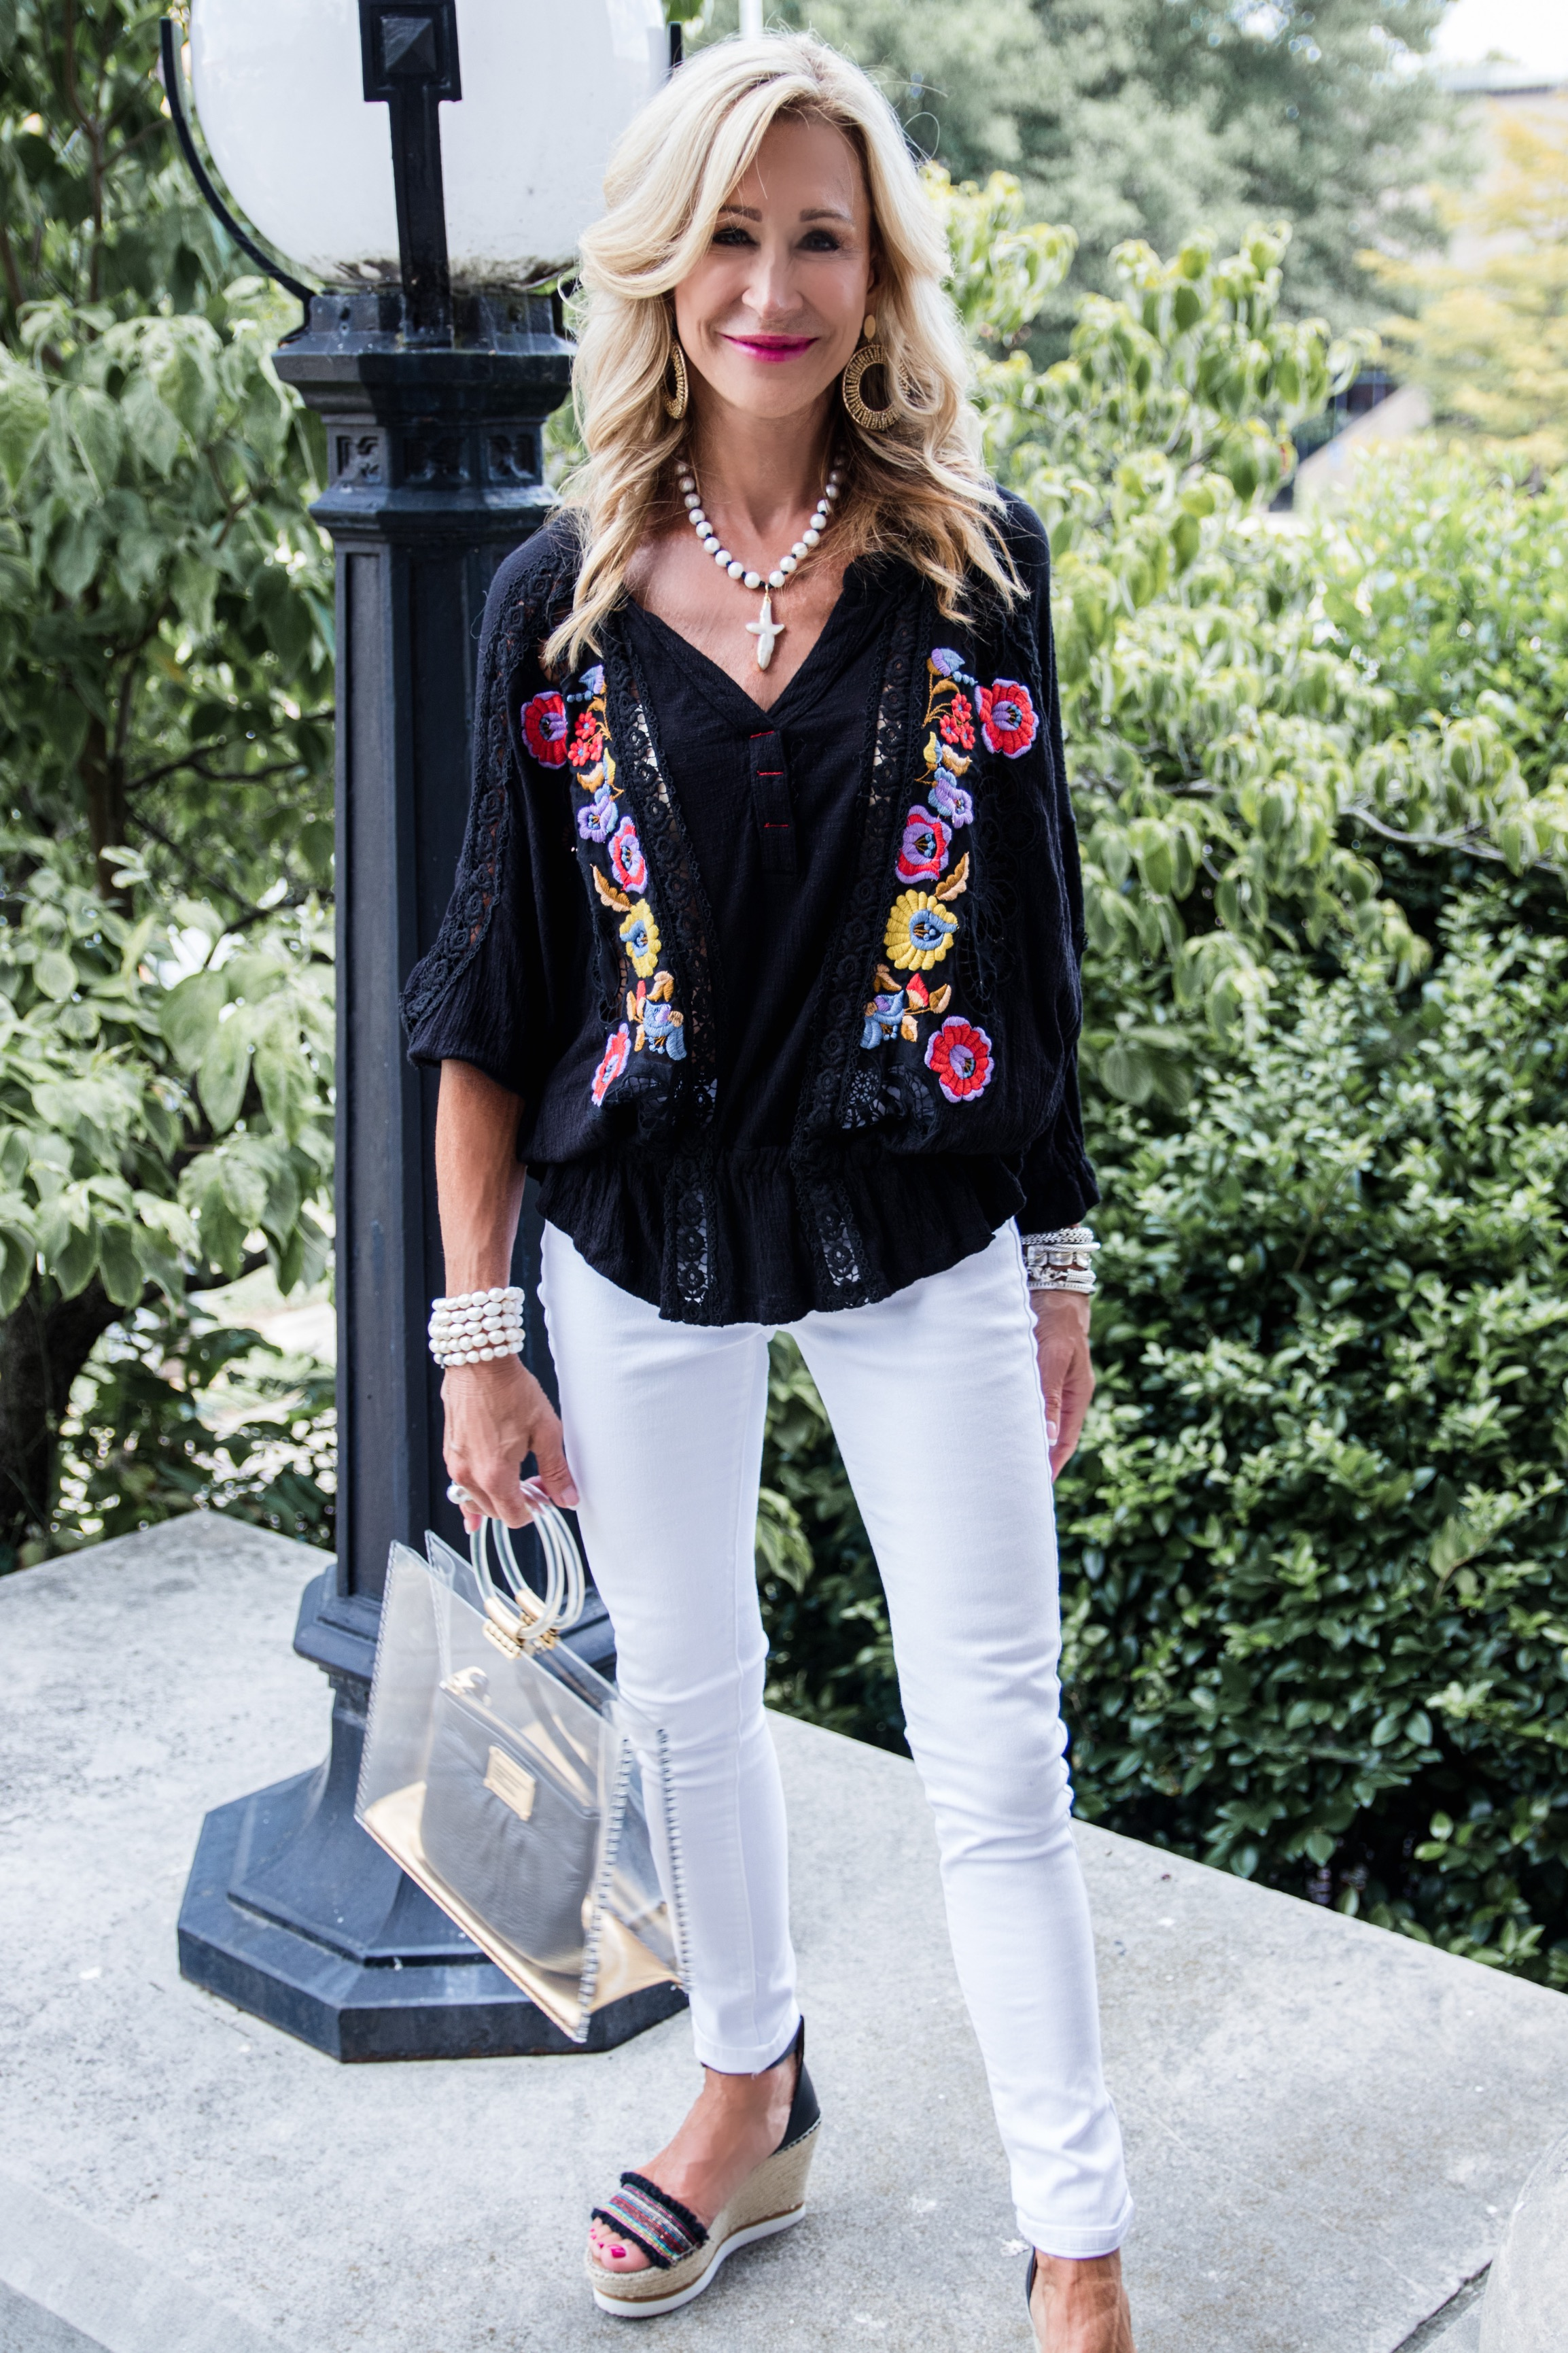 Free People boho top with white jeans - Crazy Blonde style